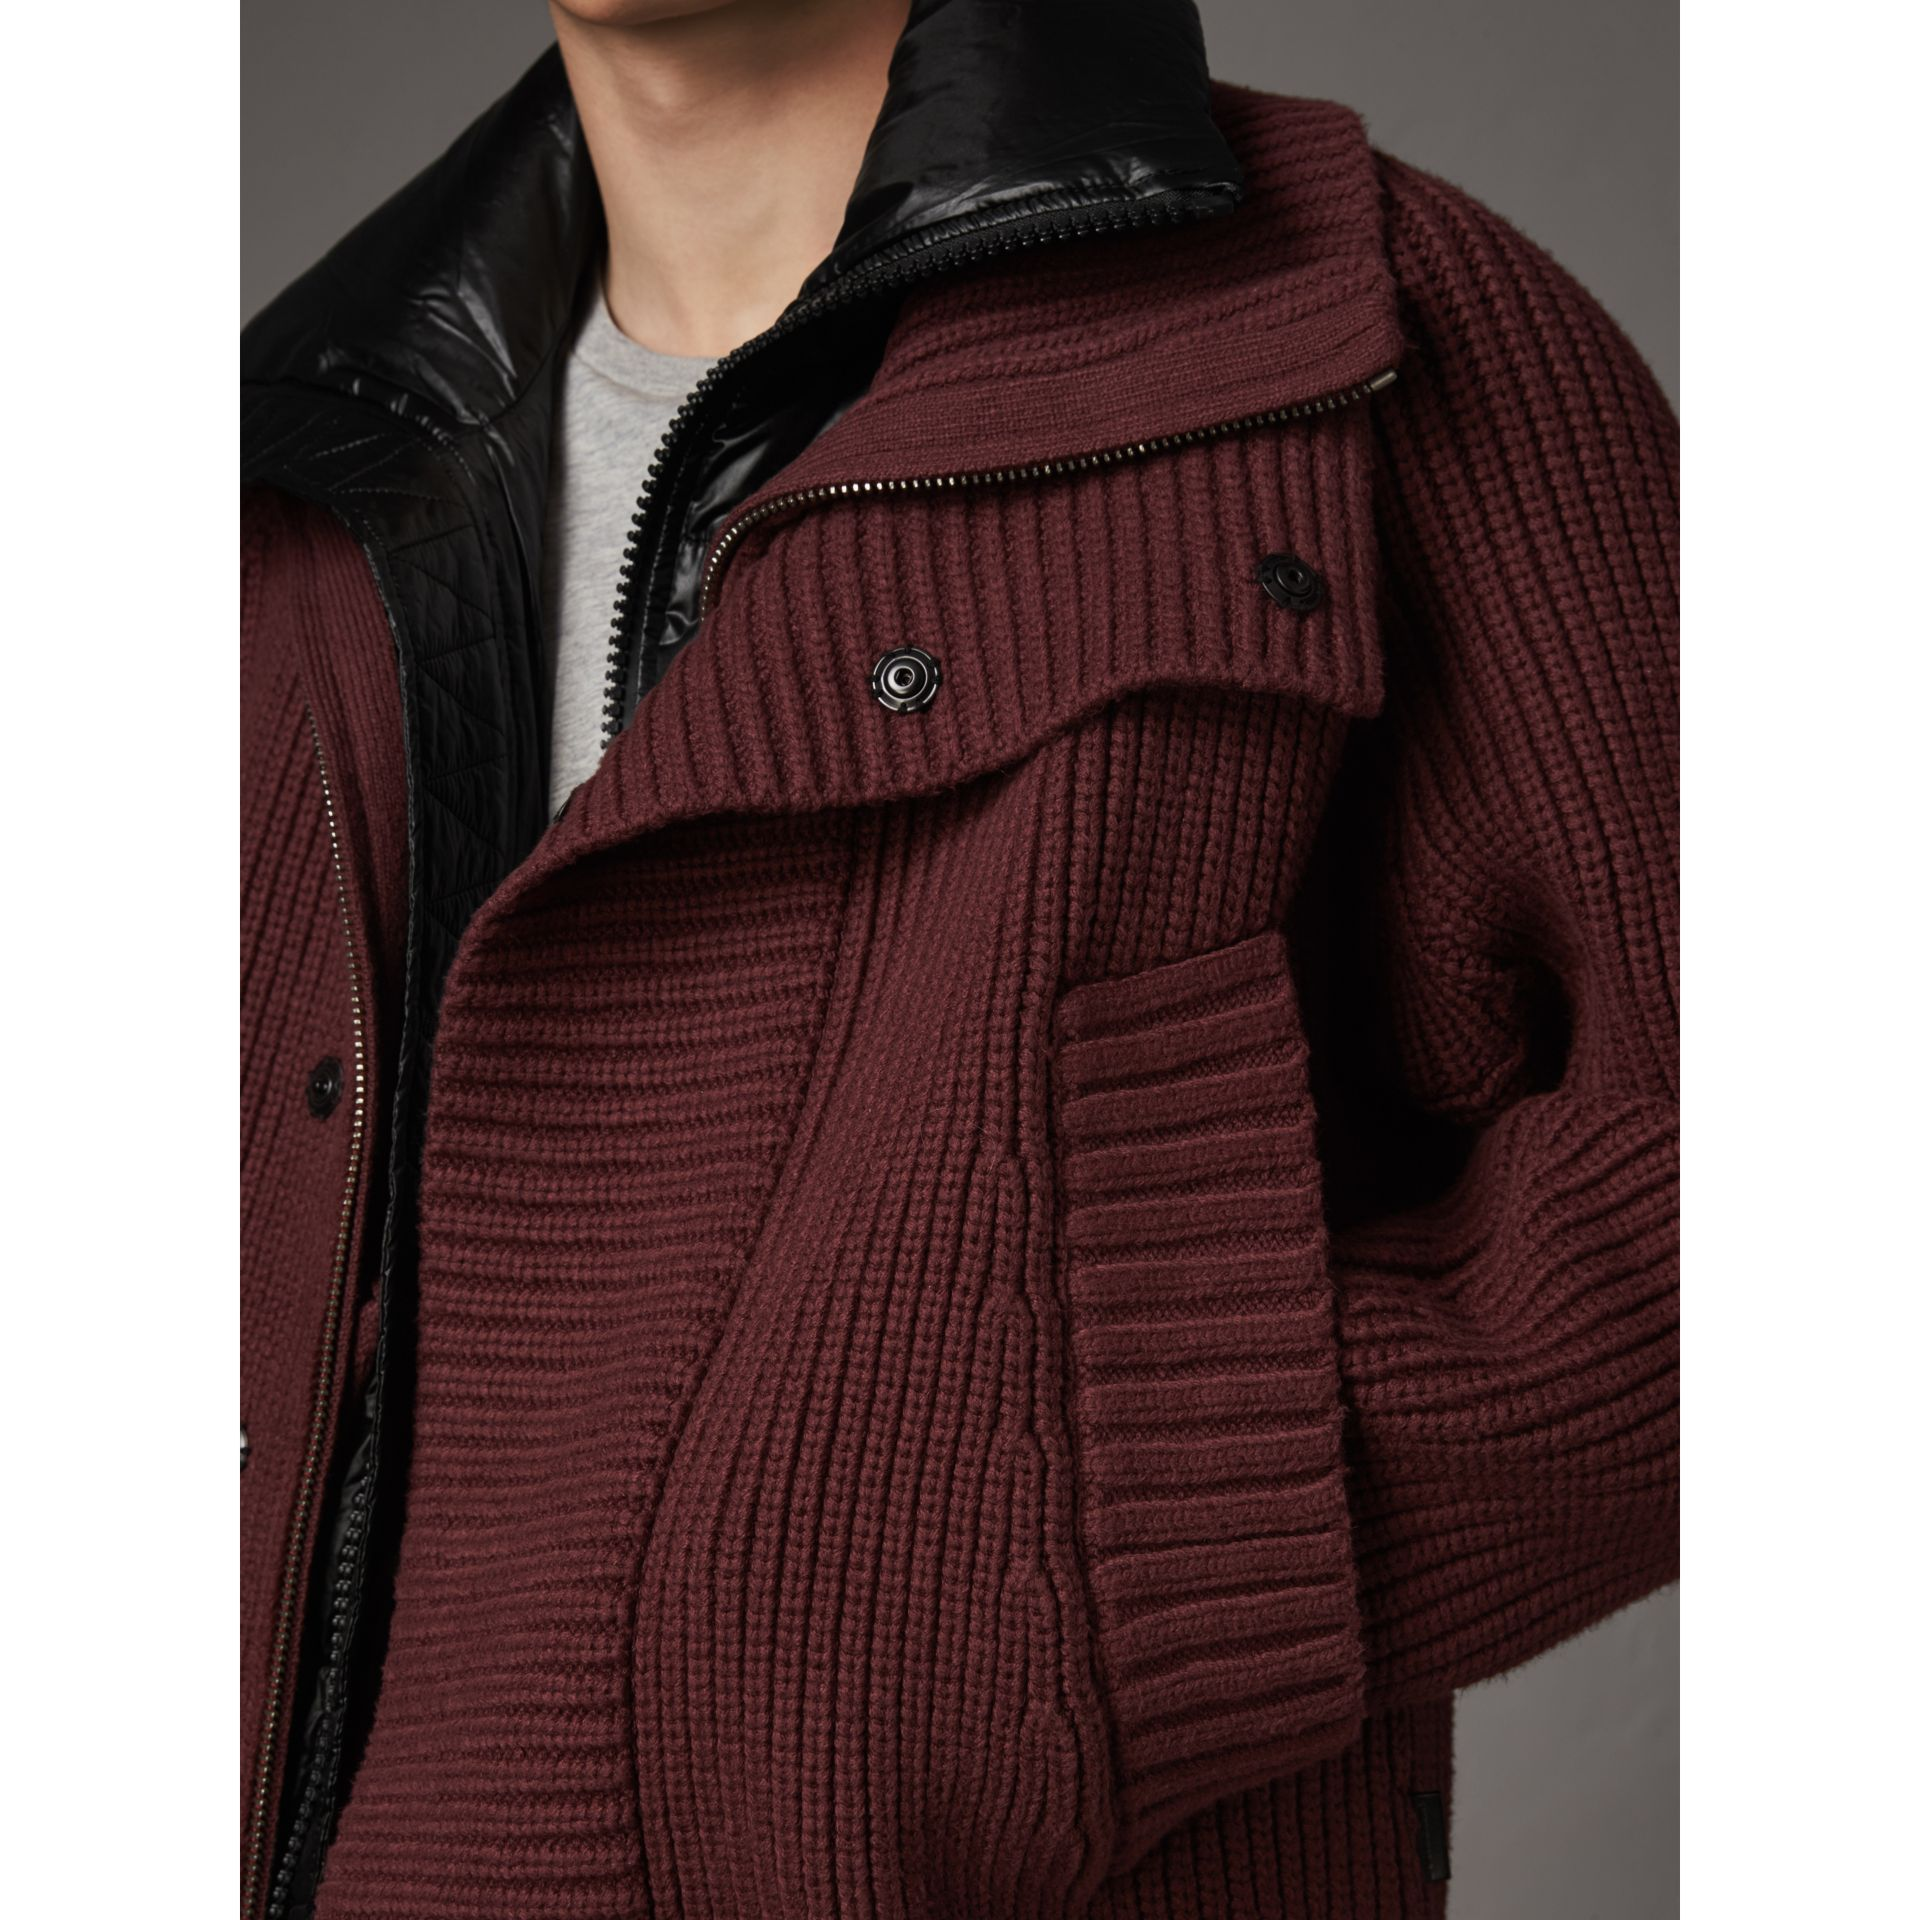 Rib Knit Cotton Blend Jacket with Down-filled Gilet in Mahogany Red - Men | Burberry United Kingdom - gallery image 1